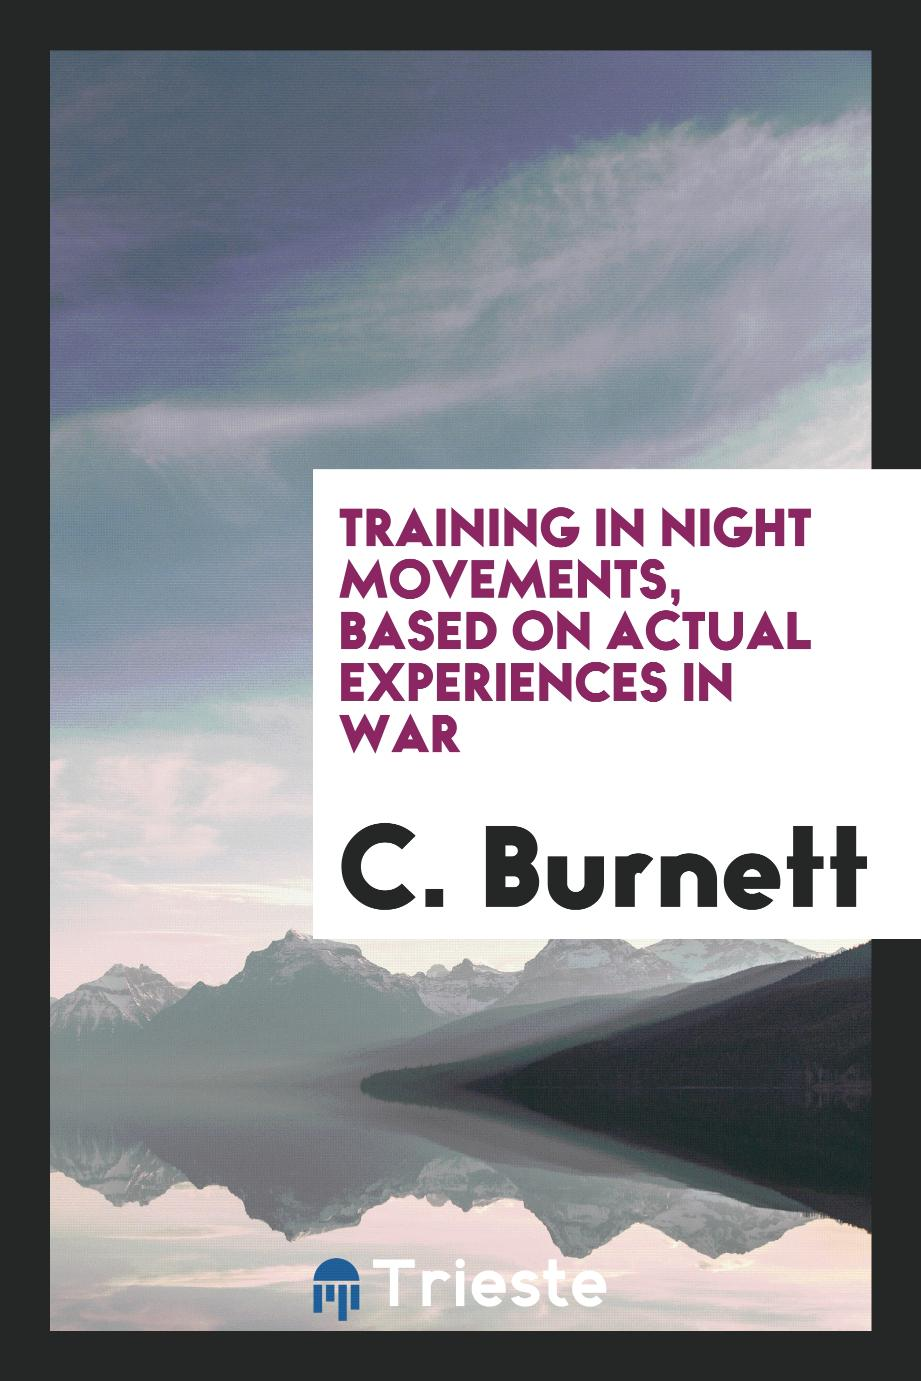 Training in Night Movements, Based on Actual Experiences in War